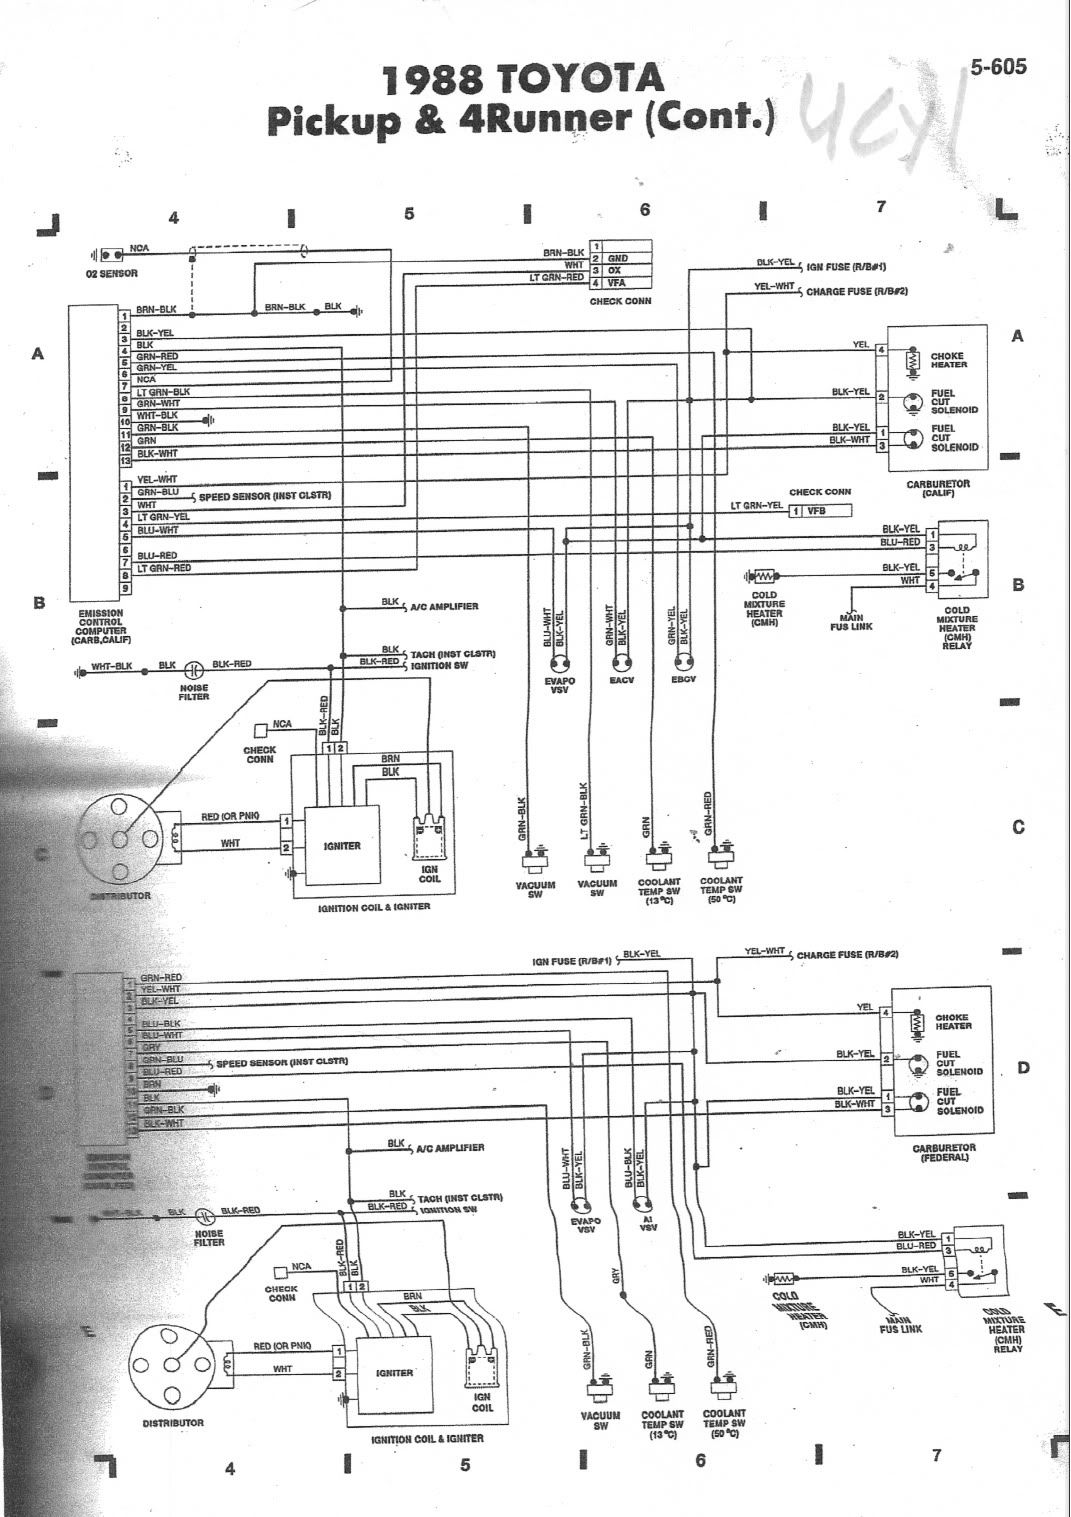 1990 toyota pickup 3vze wiring diagram wiring diagram home 1990 toyota pickup wiring diagram schematic [ 1071 x 1517 Pixel ]